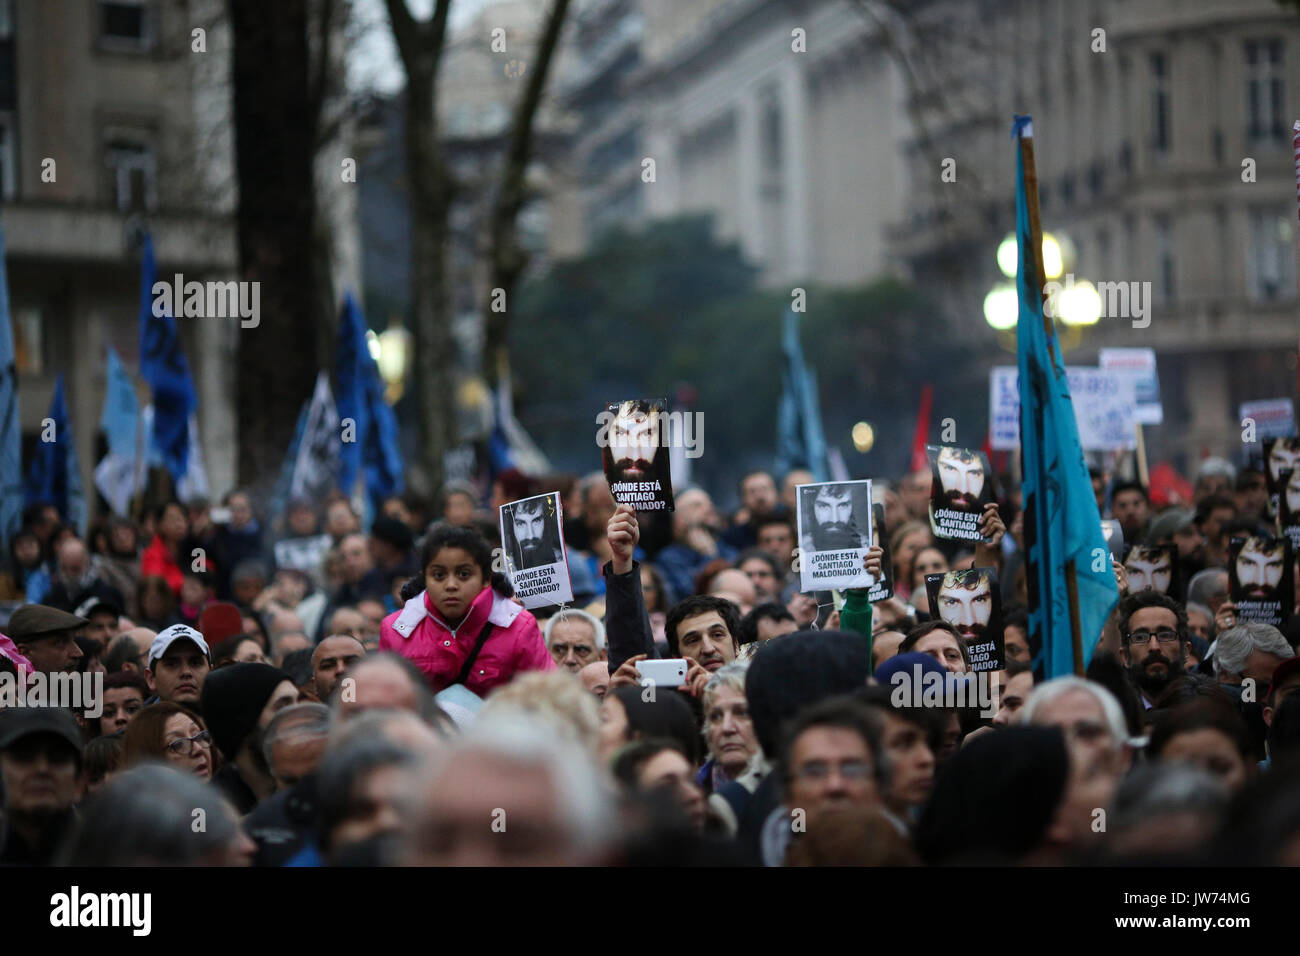 Thousands rally at the May Square in Buenos Aires, Argentina, 11 August 2017, to protest against the disappearance of young activist Santiago Maldonado during an indigenous community protest in South Argentina. EFE/David Fernandez - Stock Image